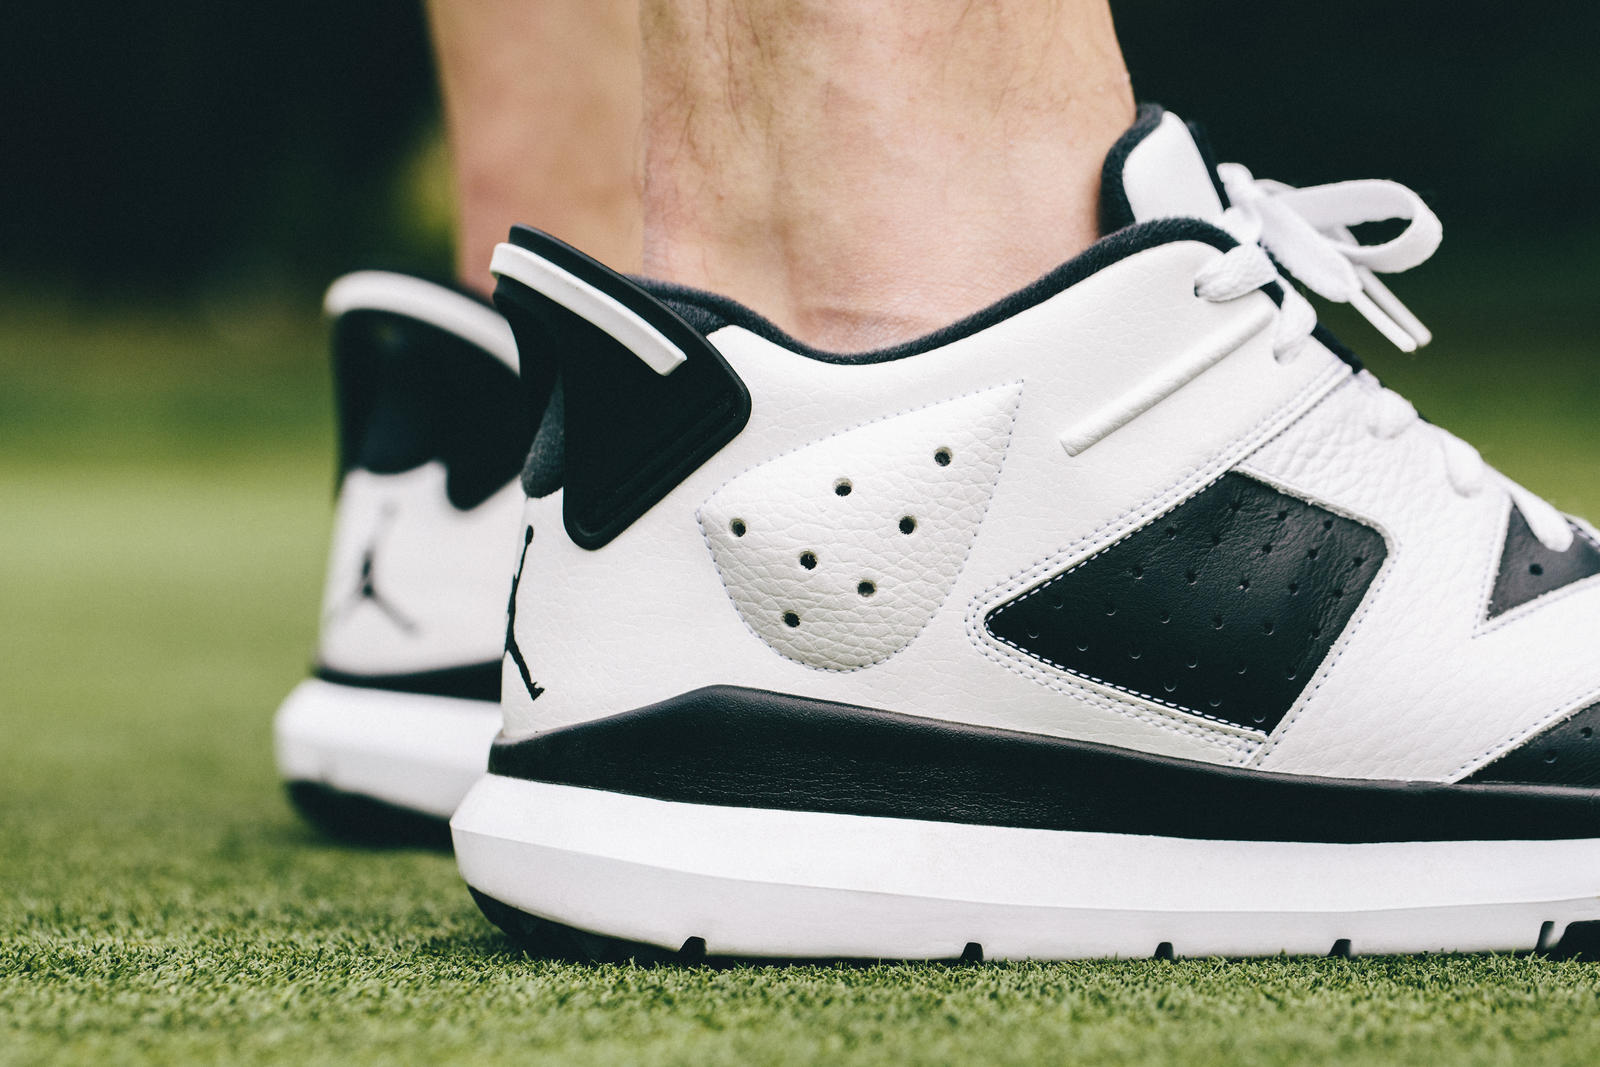 Jordan brand introduces the air jordan vi golf shoe nike news - Photos of all jordan shoes ...